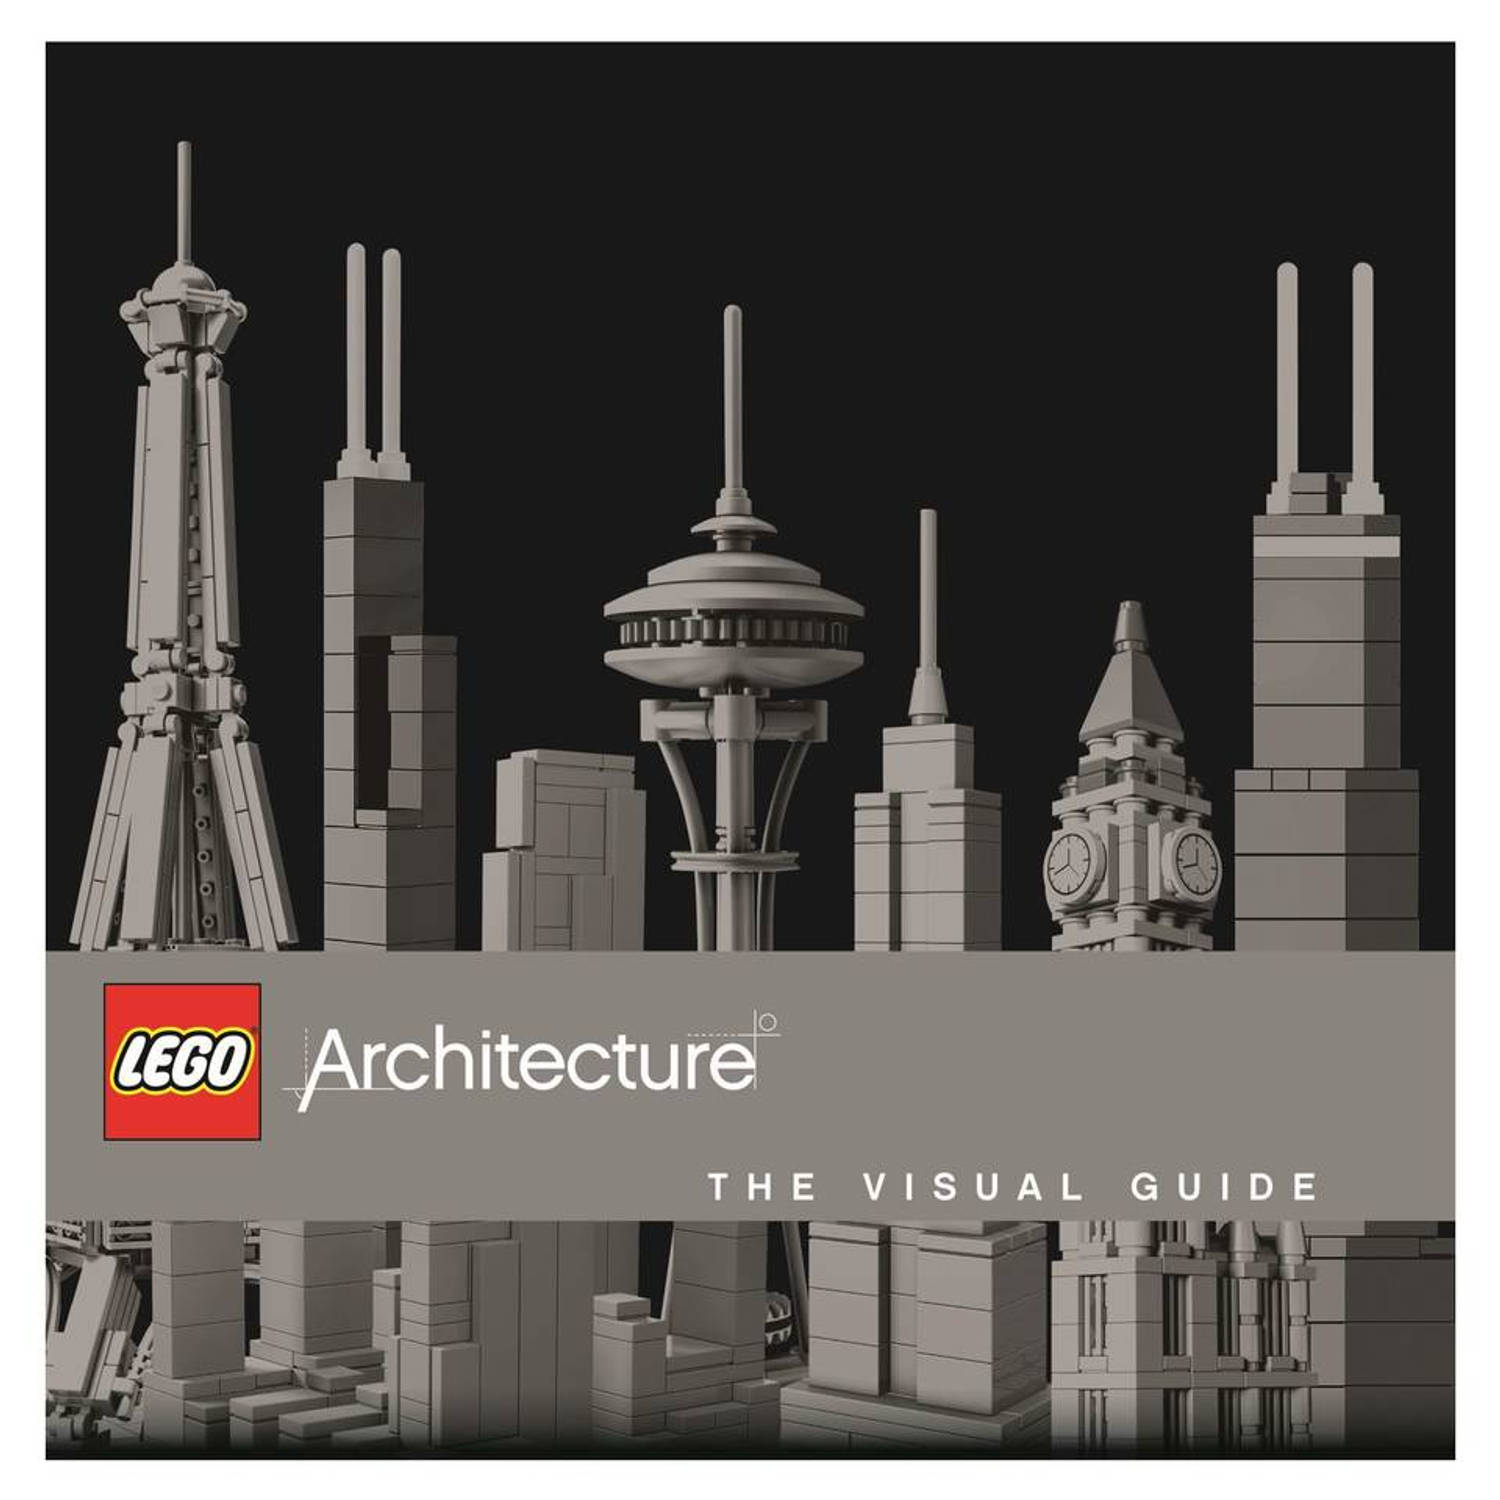 Lego 355724 Architecture - The Visual Guide [En]